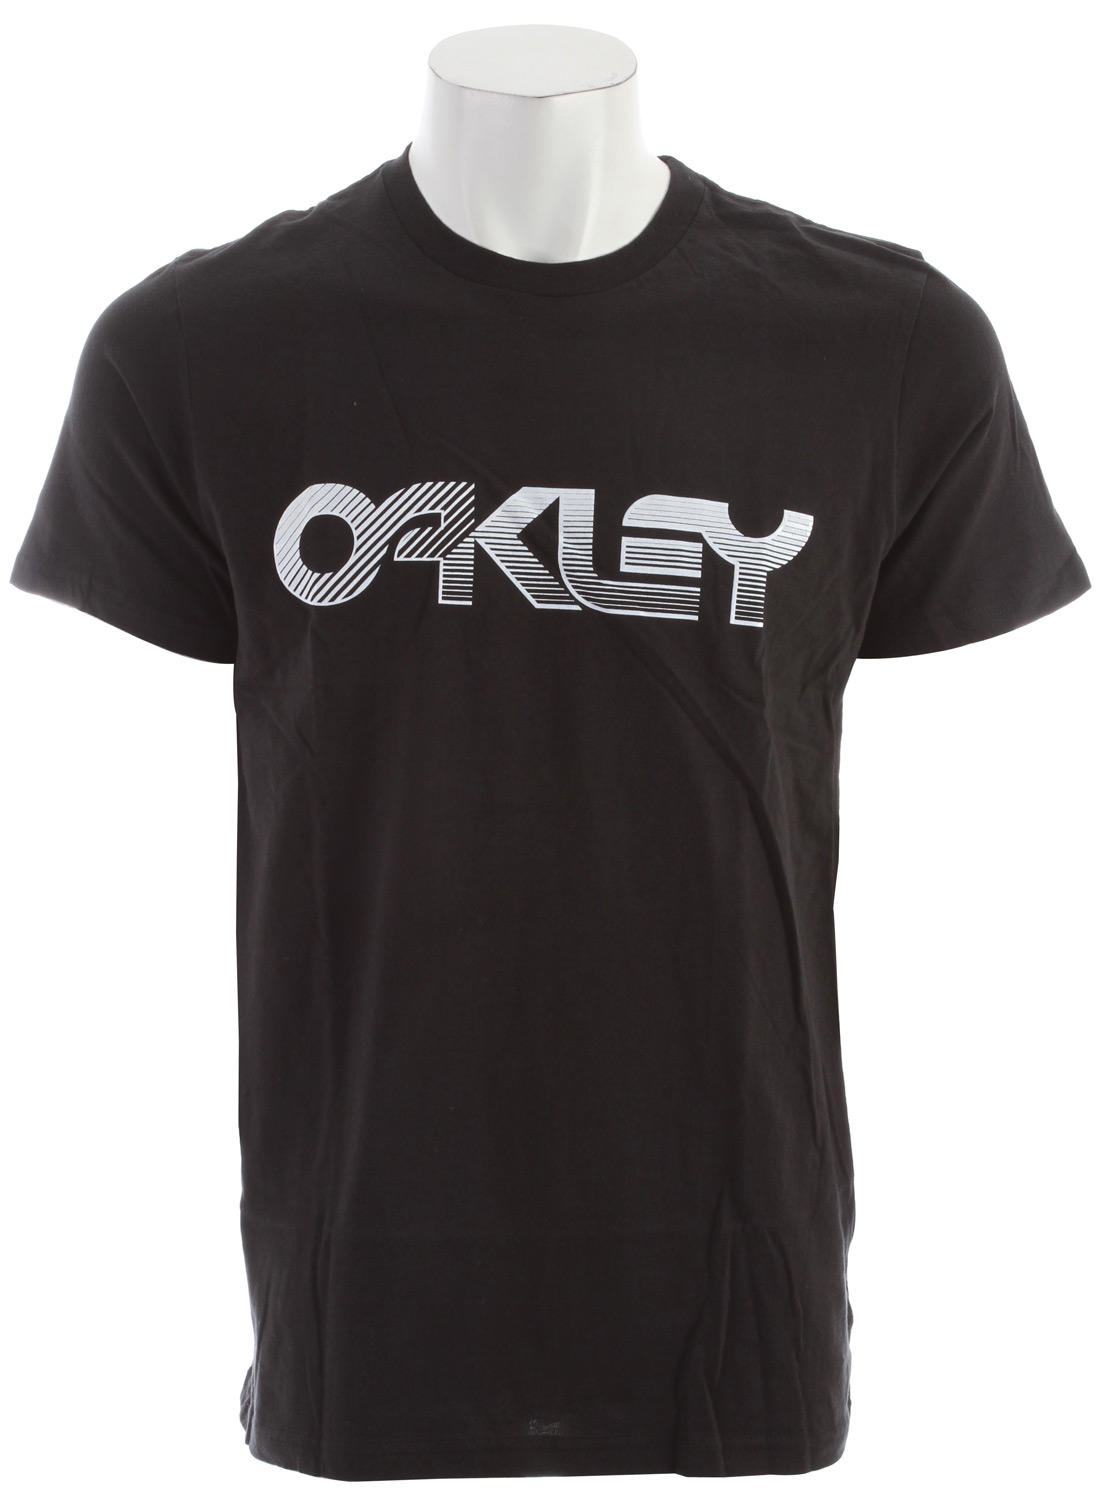 Surf An iconic logo stands out in liquid detail on the pure cotton Current Edition Tee, ideal for the hydro athlete when he's out of his element.Key Features of the Oakley Current Edition T-Shirt: Print on front 100% cotton T-shirt Fit: Regular - $20.00